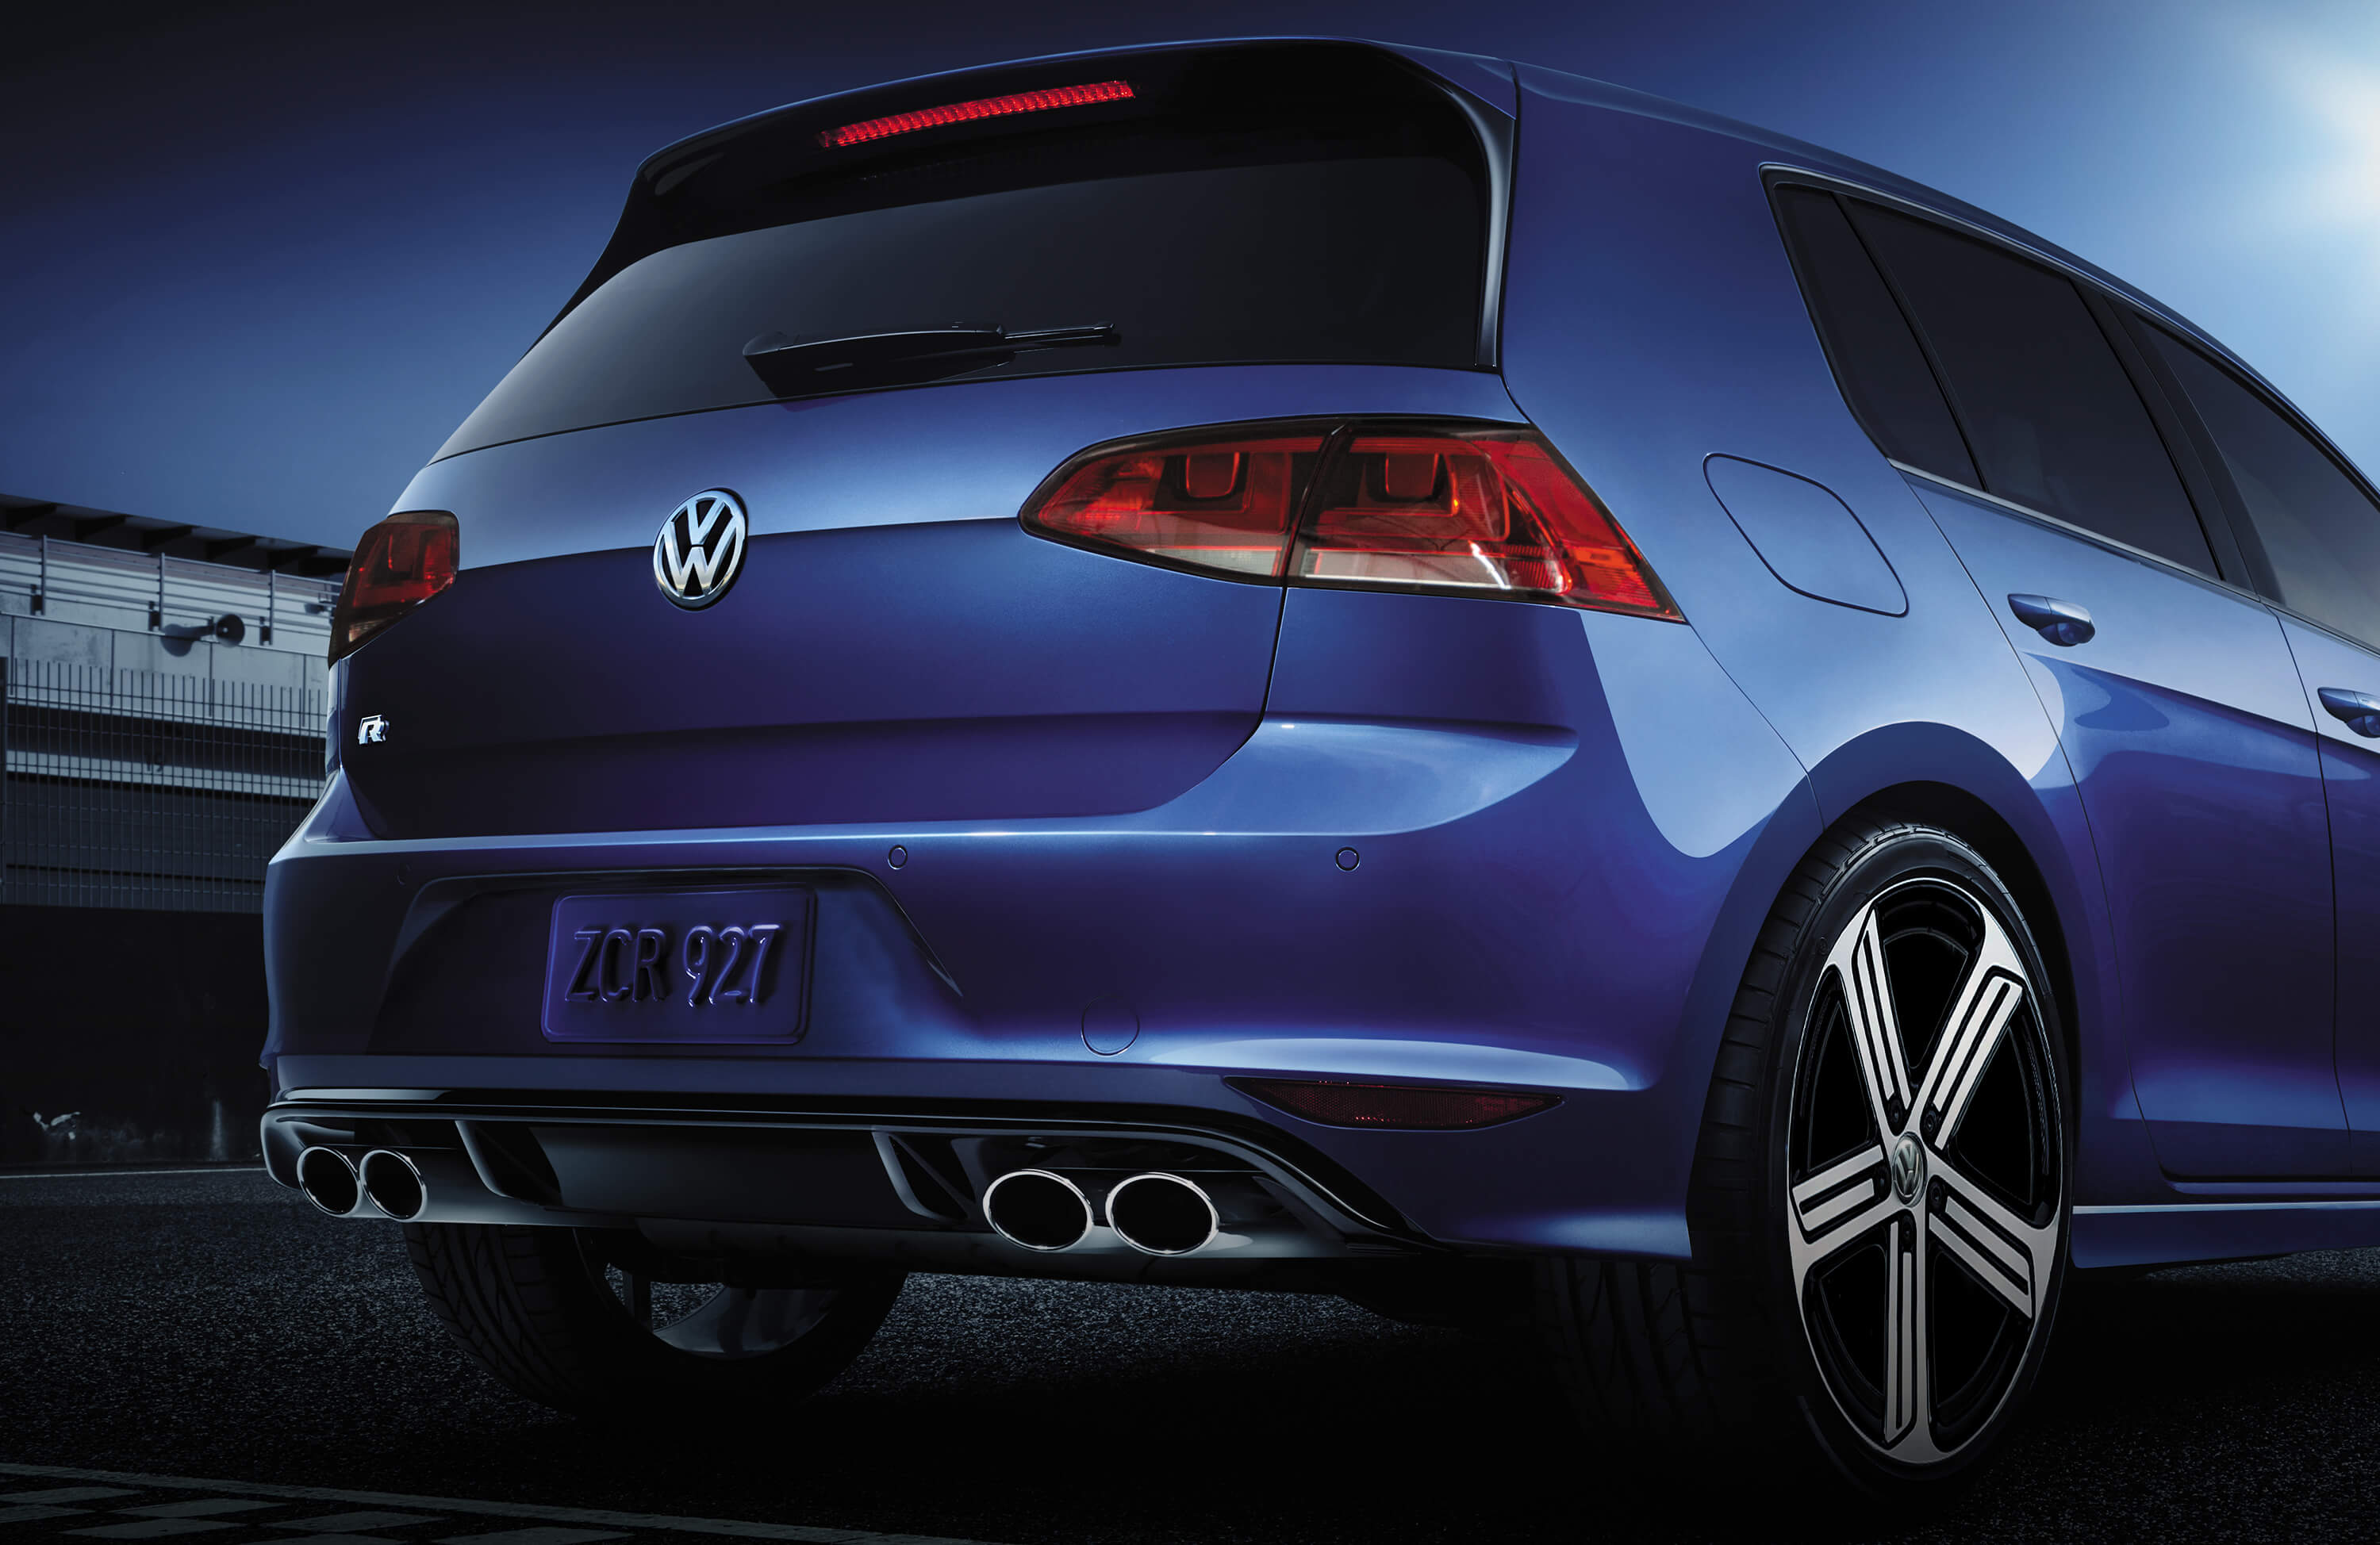 albuquerque vw post in graf awesome volkswagen and r news new alles lovely golf of gti related reviews ber